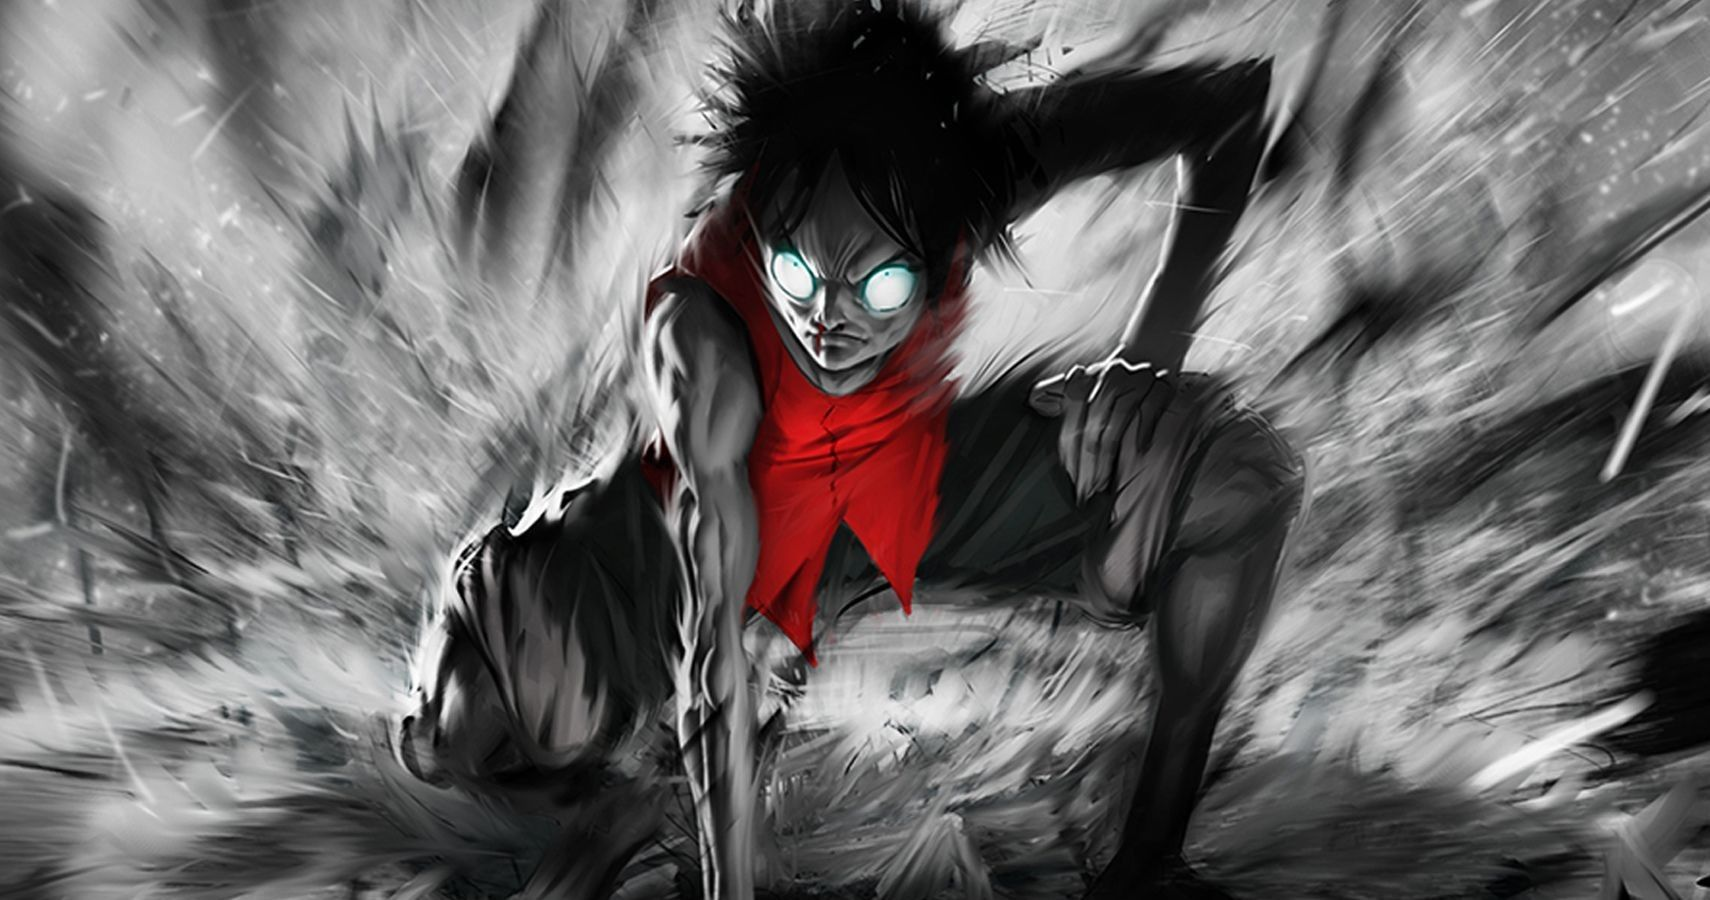 Pirate King One Piece